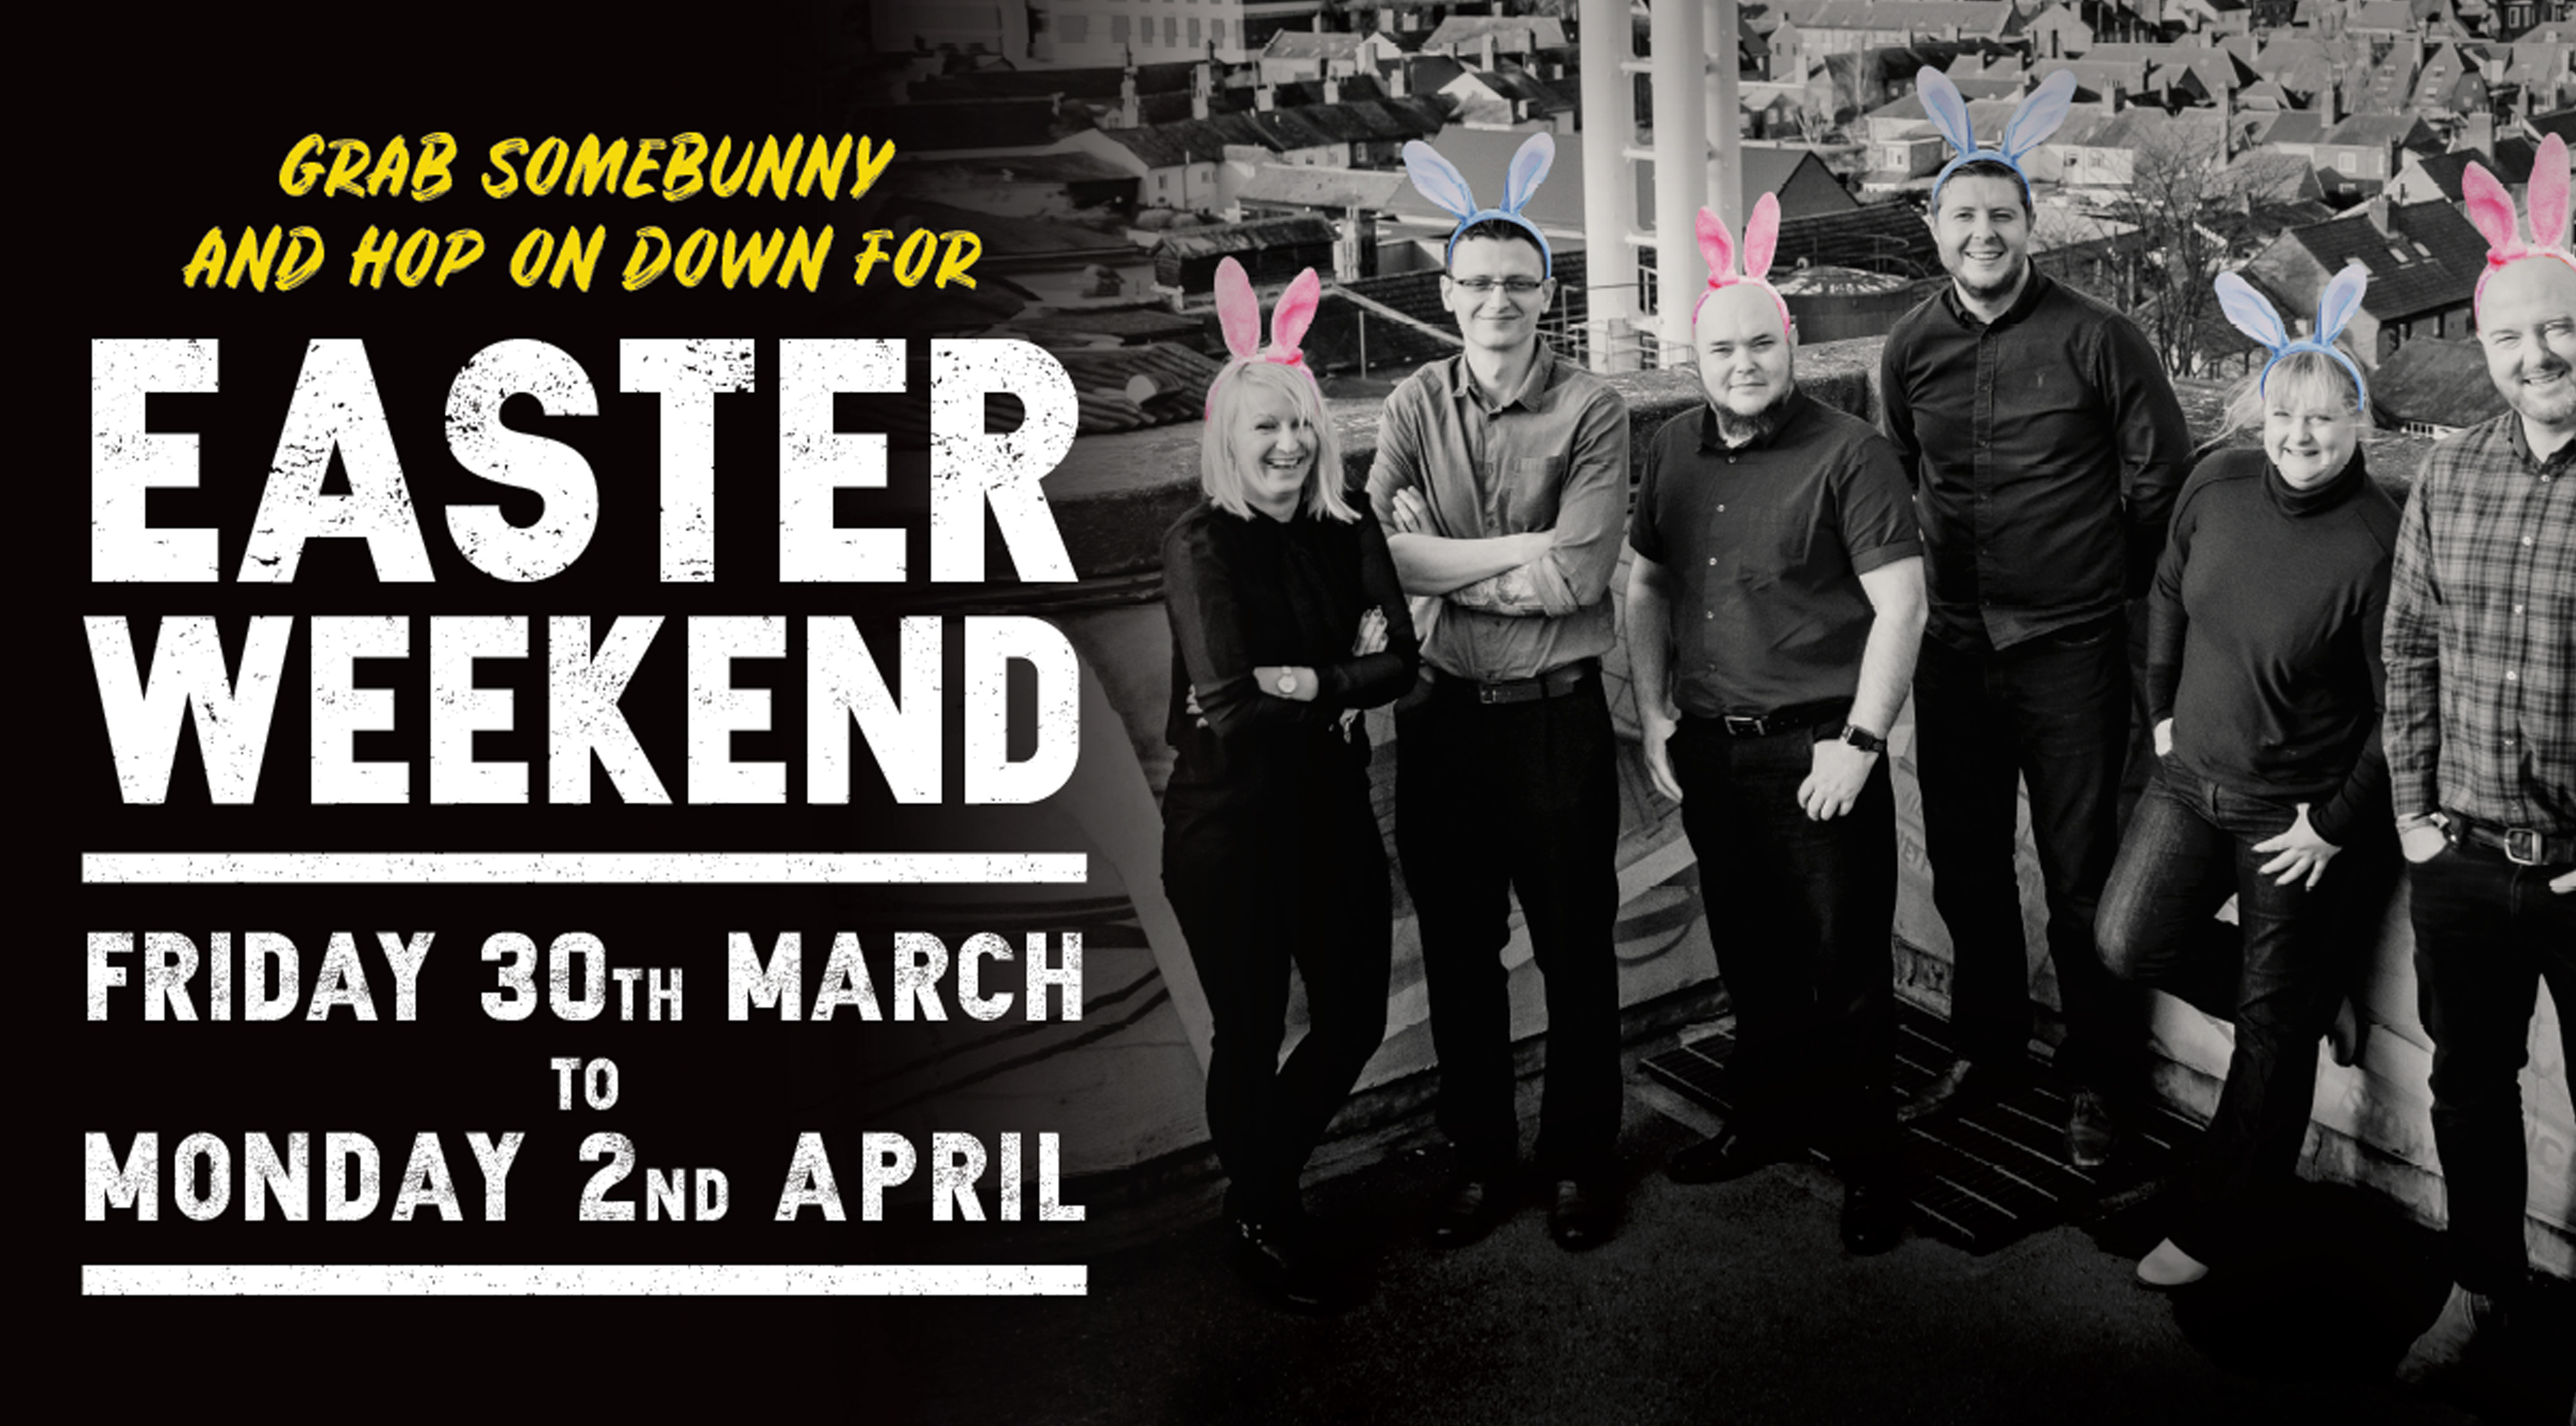 Join us for the big Easter Weekend!